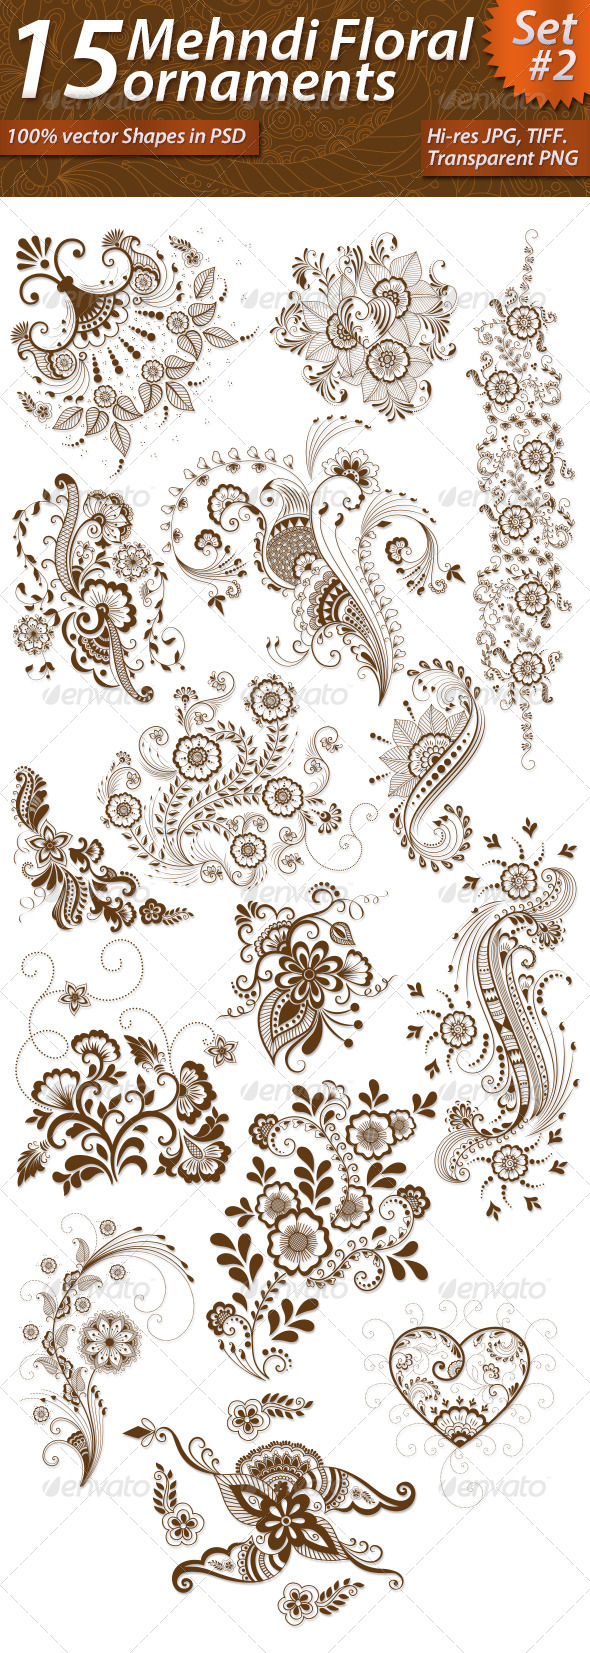 GraphicRiver 15 Mehndi Floral Ornaments Set#2 7387176